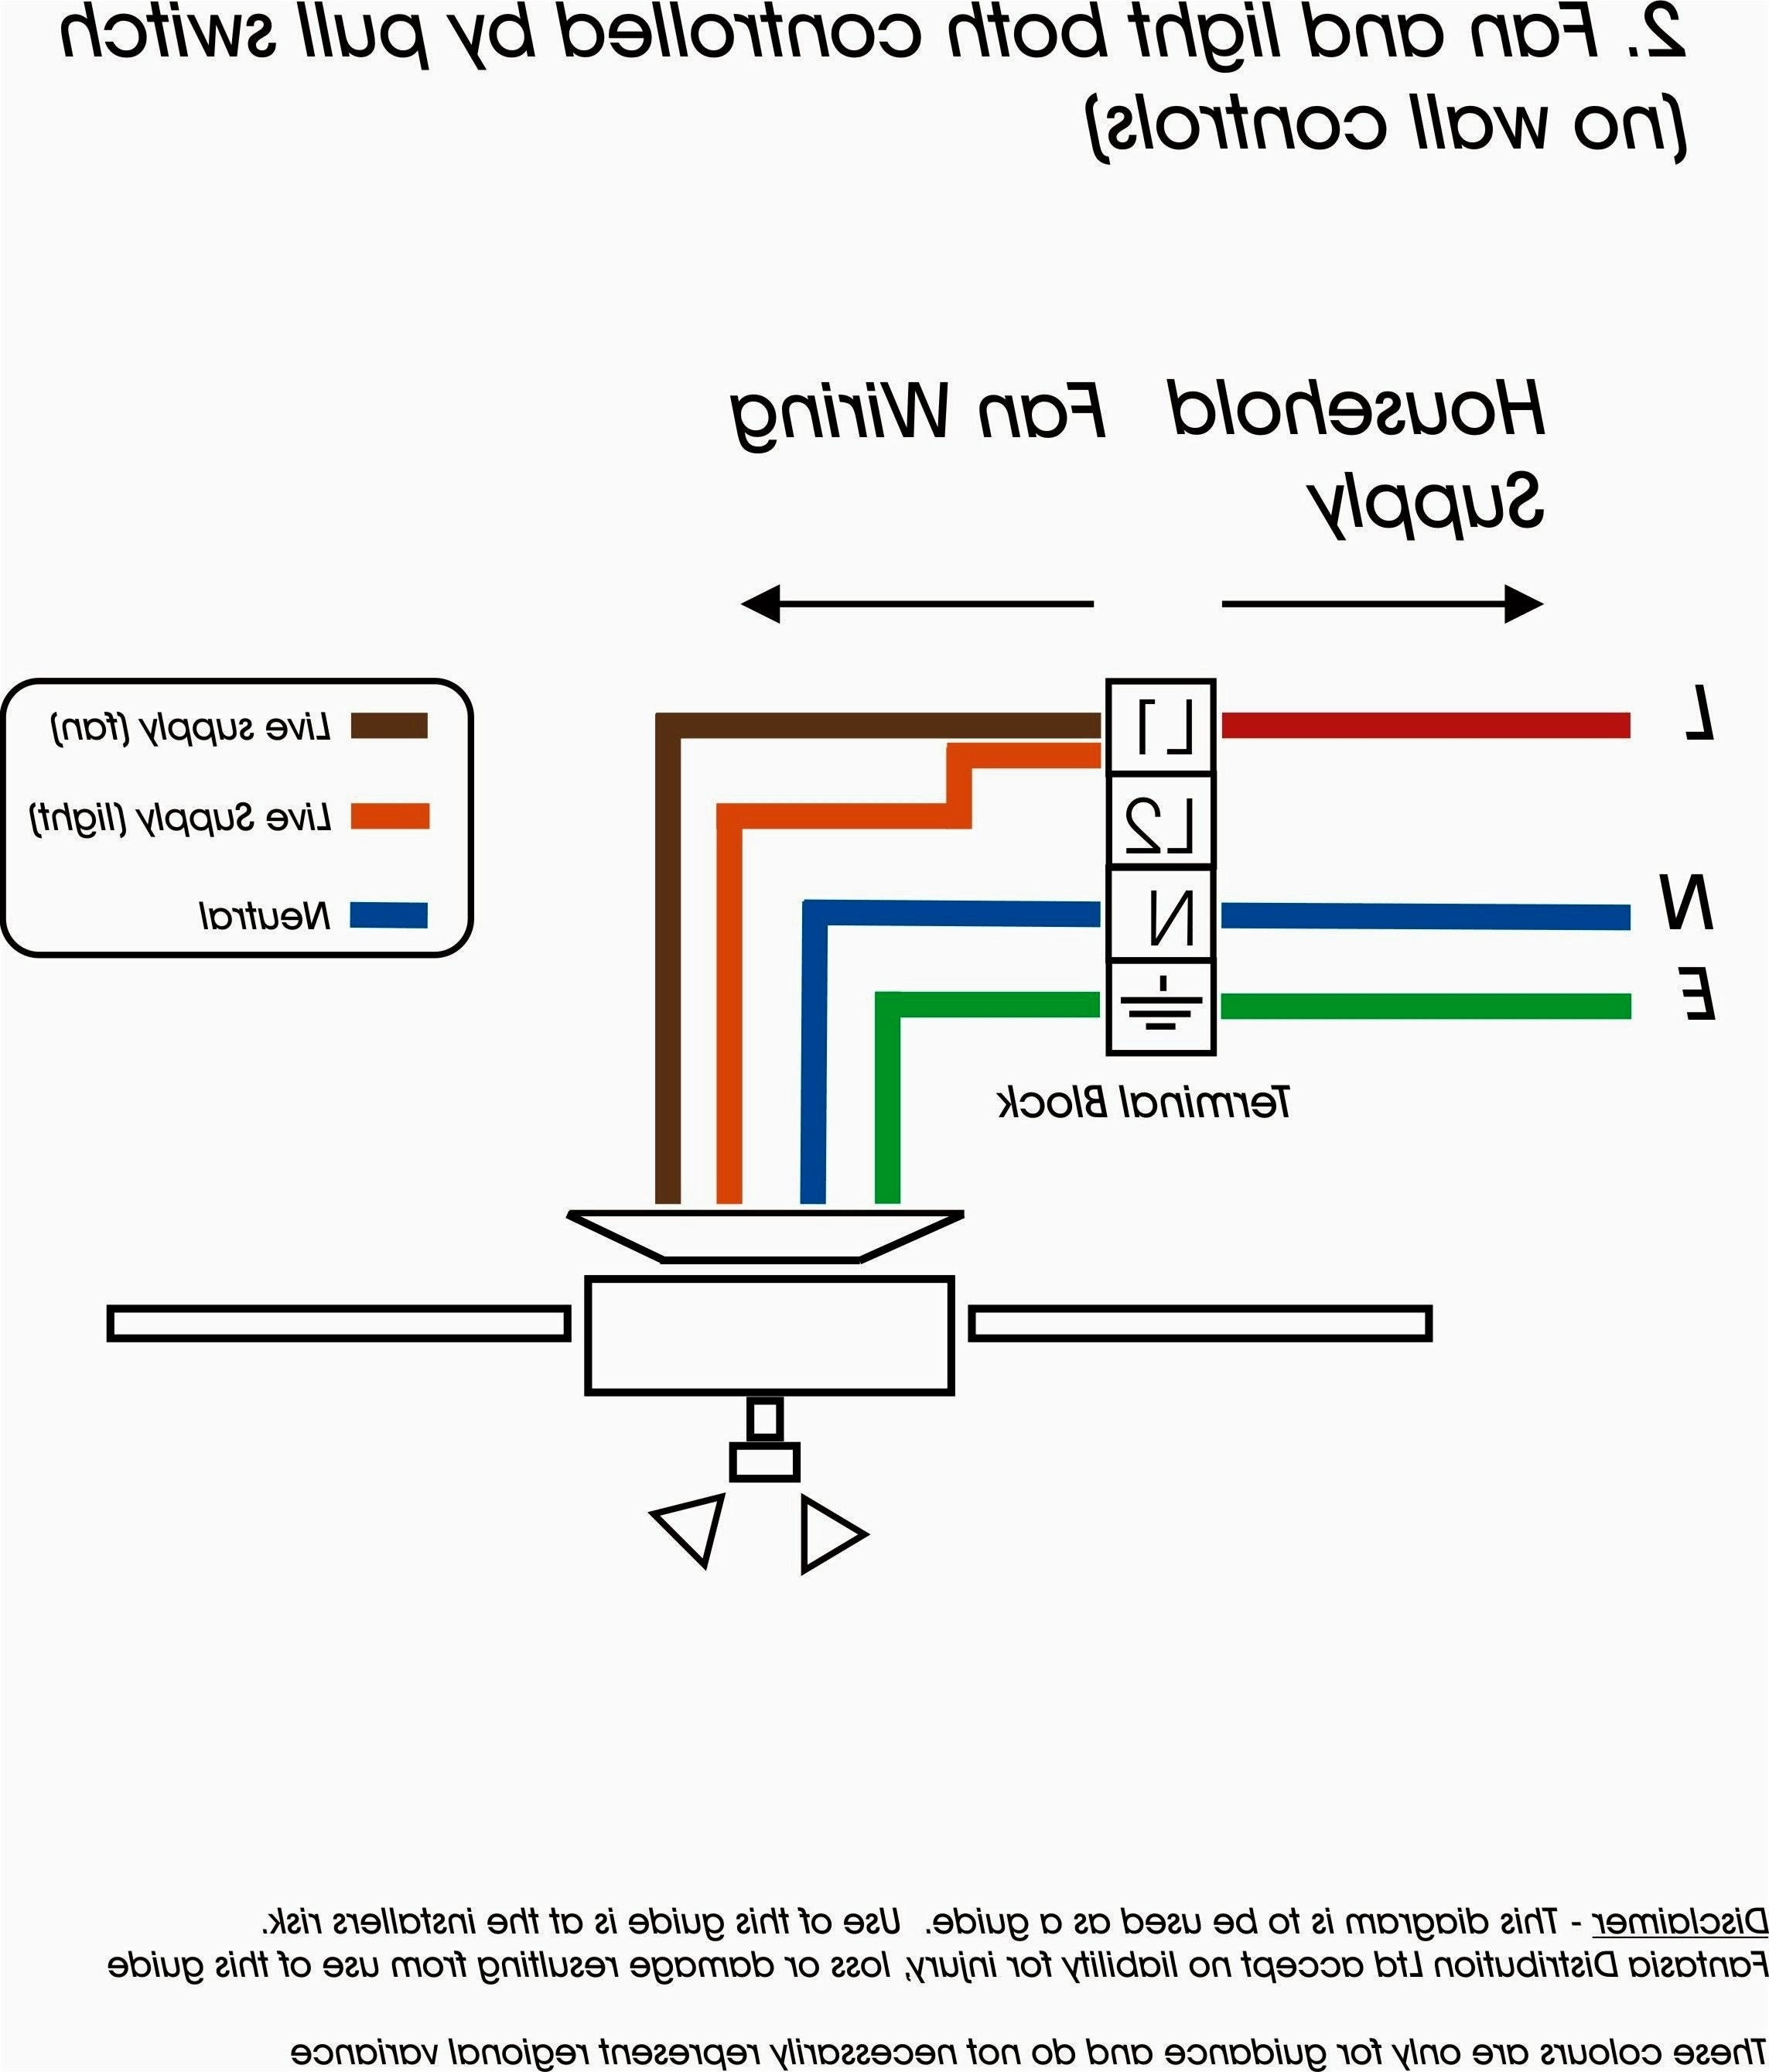 white rodgers thermostat wiring diagram 1f80 361 Download-Wiring diagram for white rodgers thermostat & Good White Rodgers 6-g